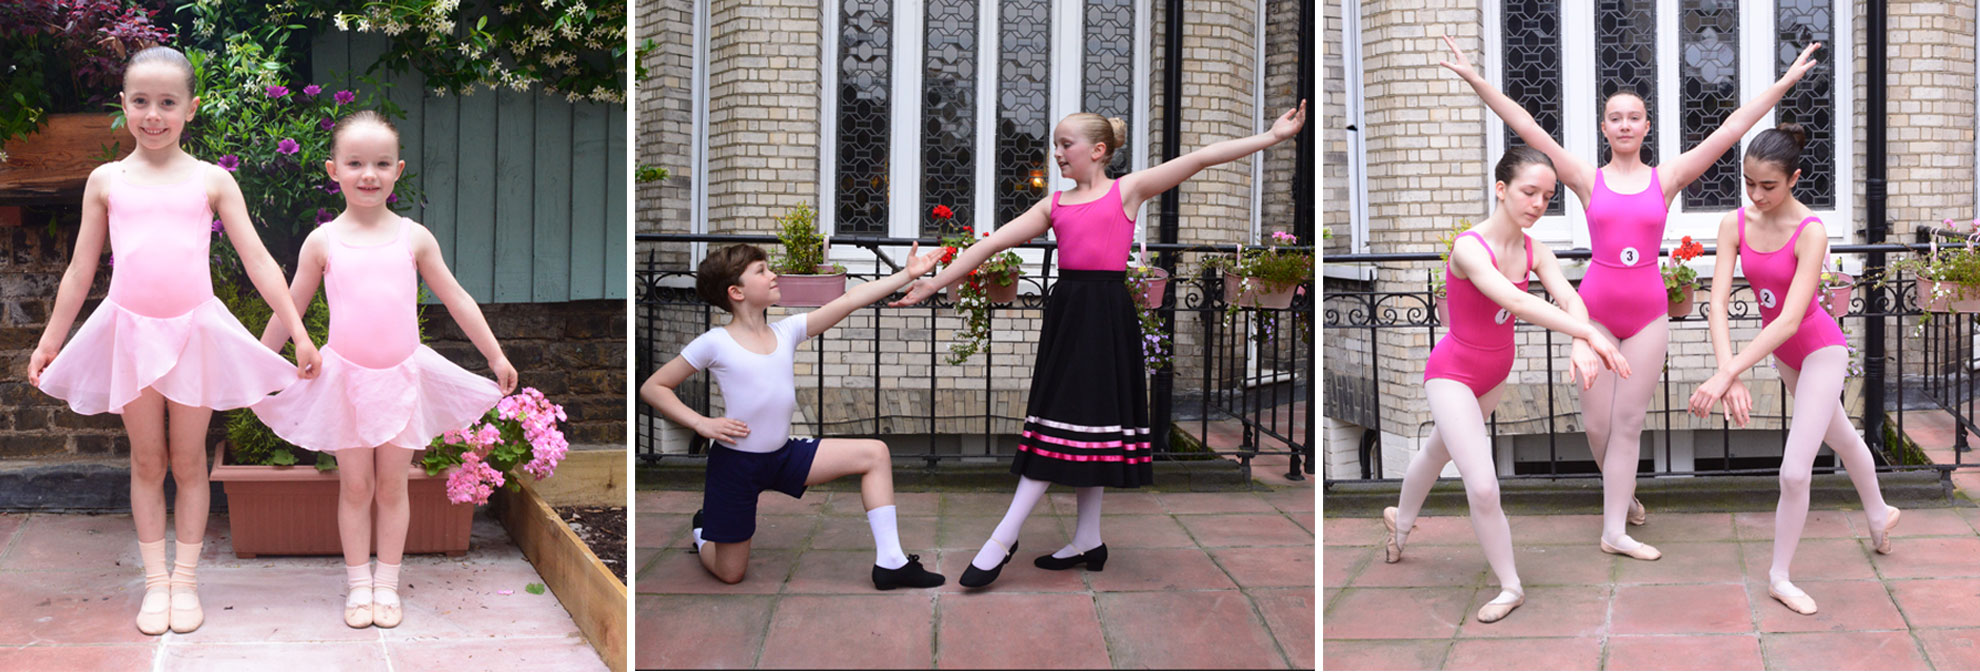 Dakoda's Dance Academy teaches RAD classical Ballet to all ages and abilities